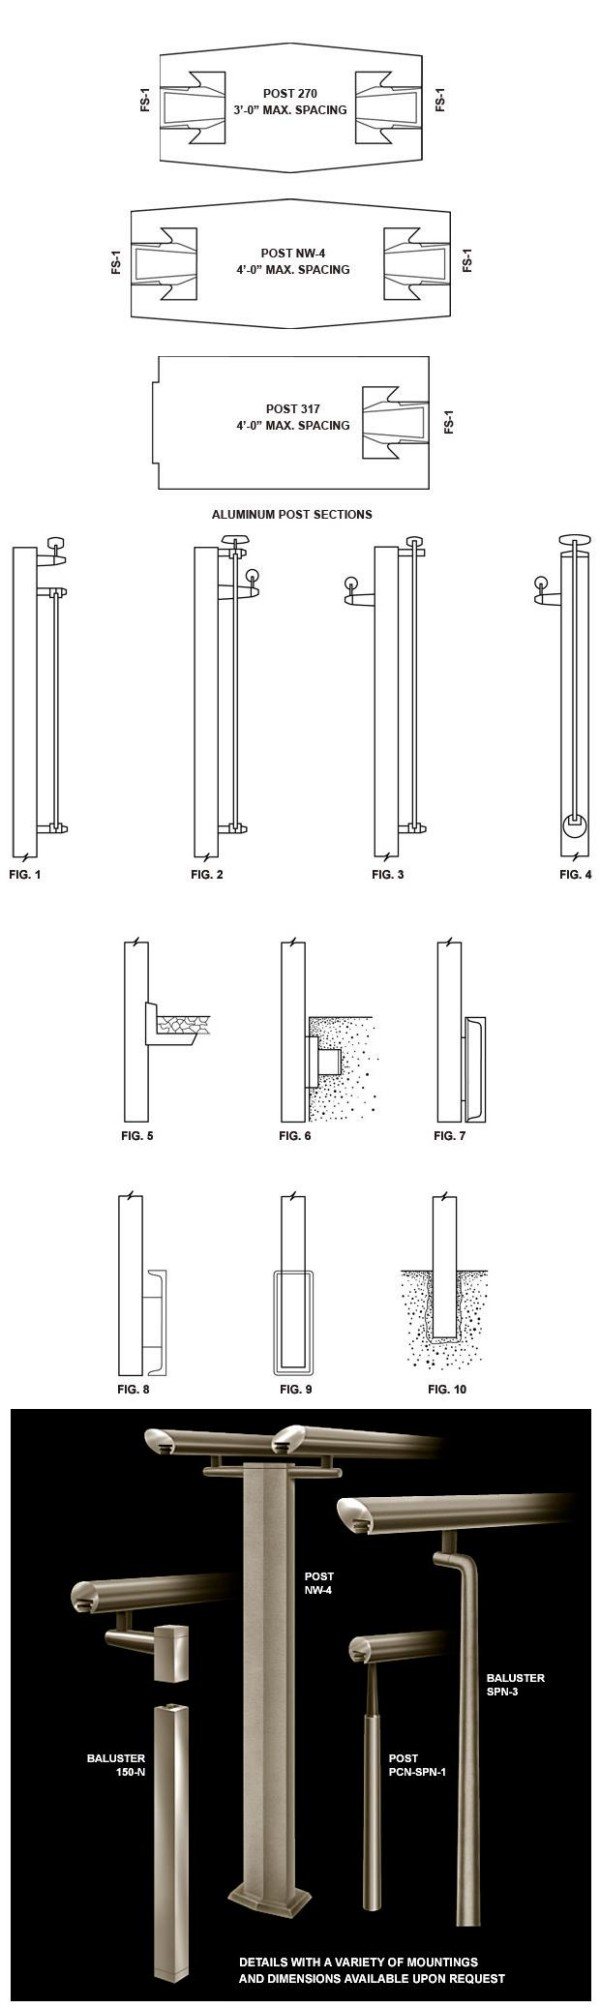 Aluminum Posts and Balusters